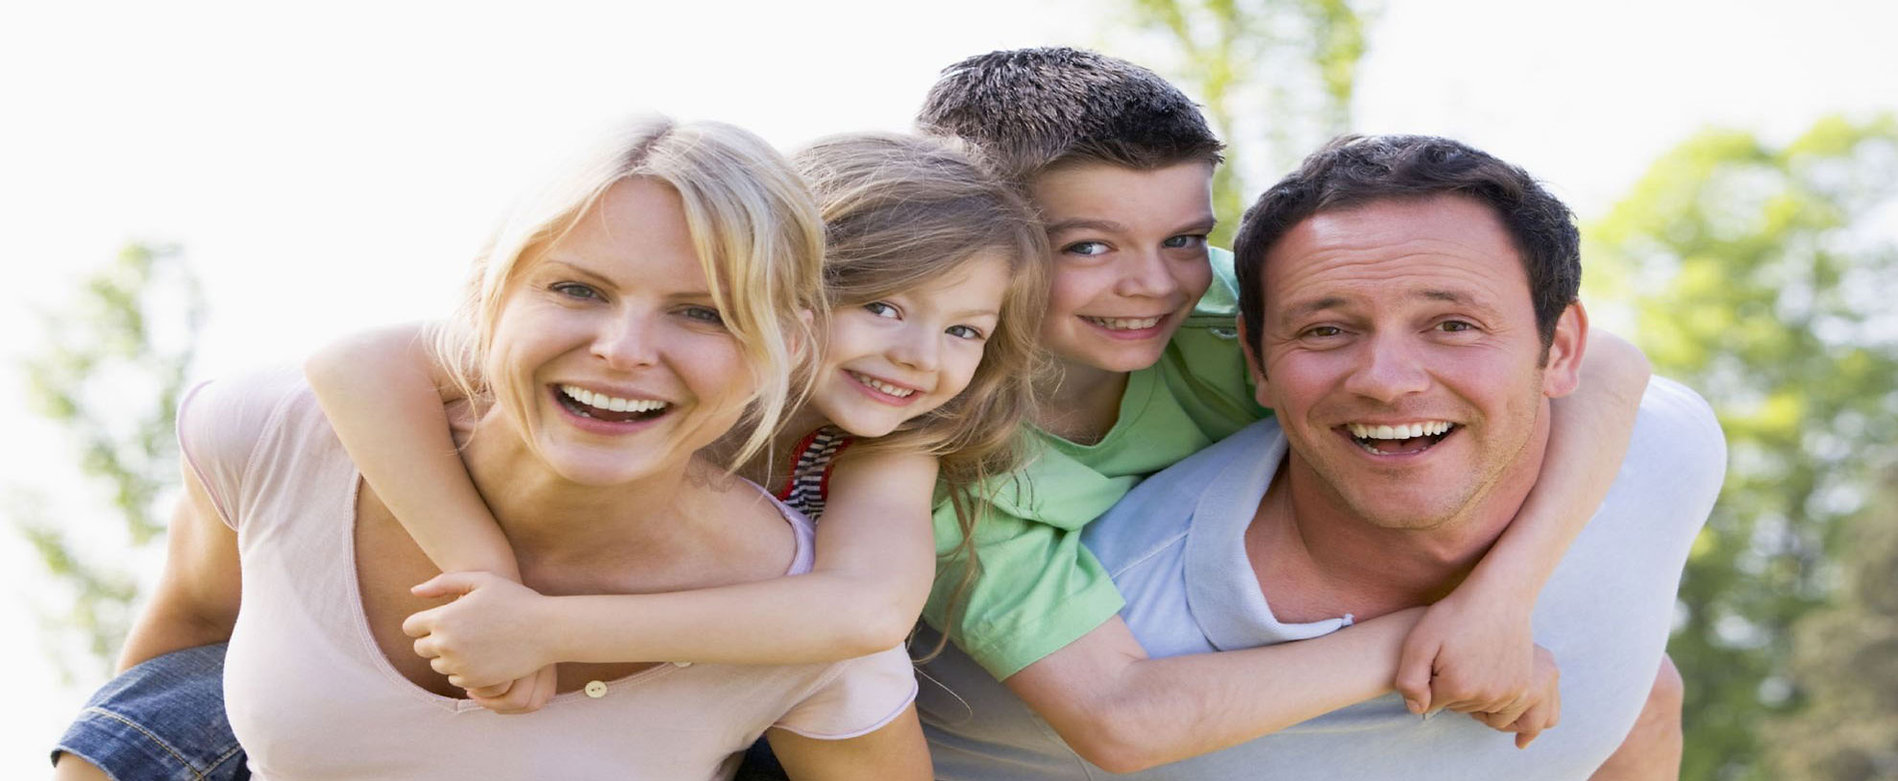 Family dentistry,Caring dentistry,New patients,Mother,Father, Dughter,Son, smiling family, tooth whitening